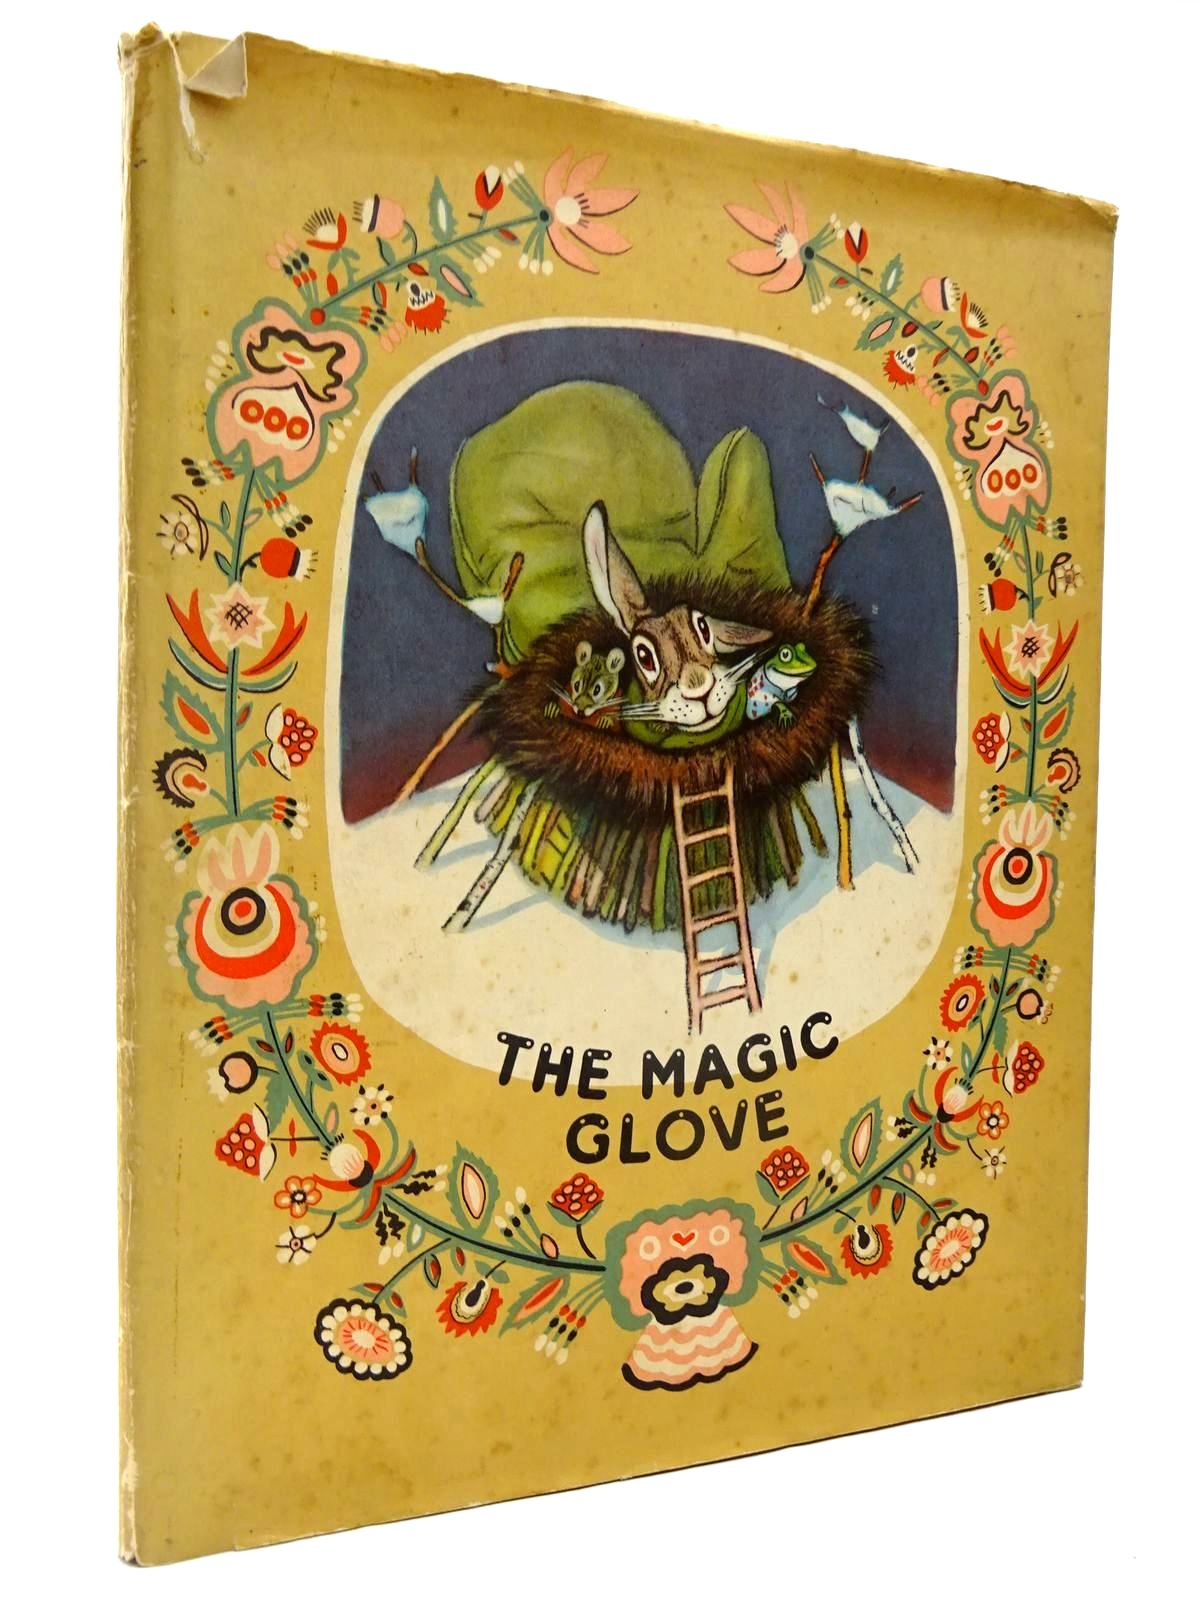 Photo of THE MAGIC GLOVE written by Zheleznova, Irina illustrated by Rachev, E. published by Maxson & Co. (Publishers) Ltd. (STOCK CODE: 2130366)  for sale by Stella & Rose's Books